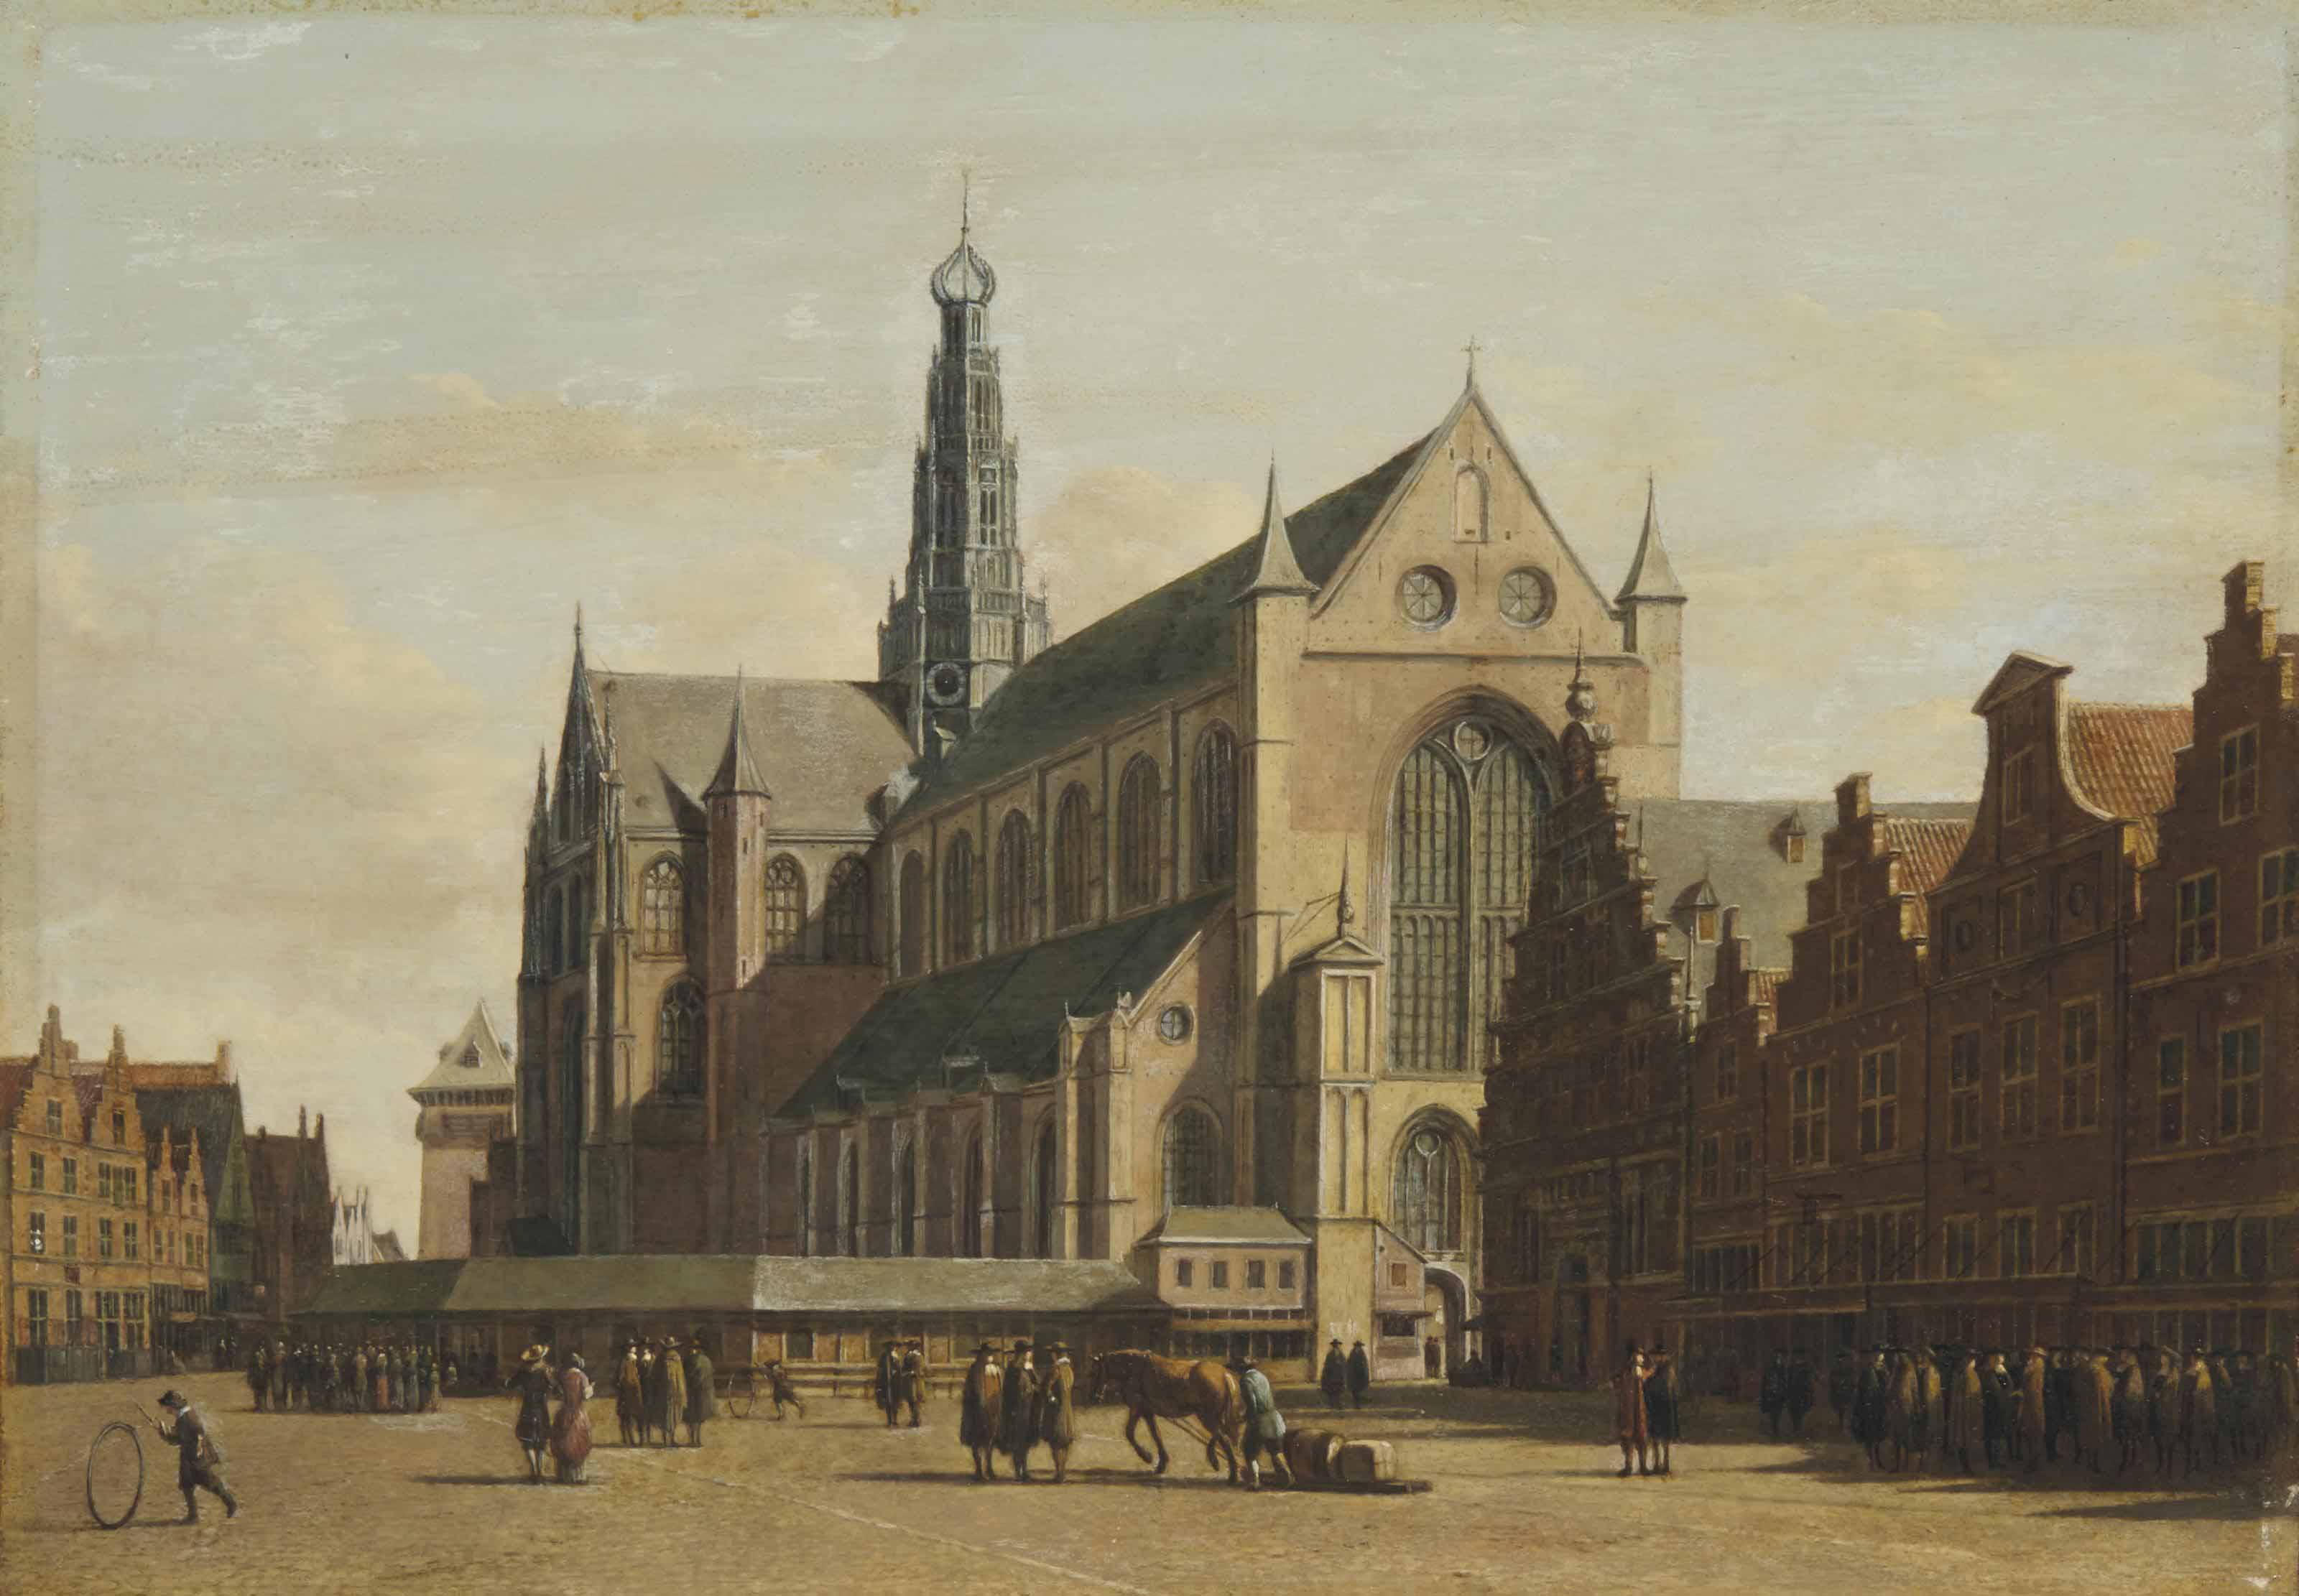 The Grote Markt, Haarlem, looking south-east, with the Church of Saint Bavo